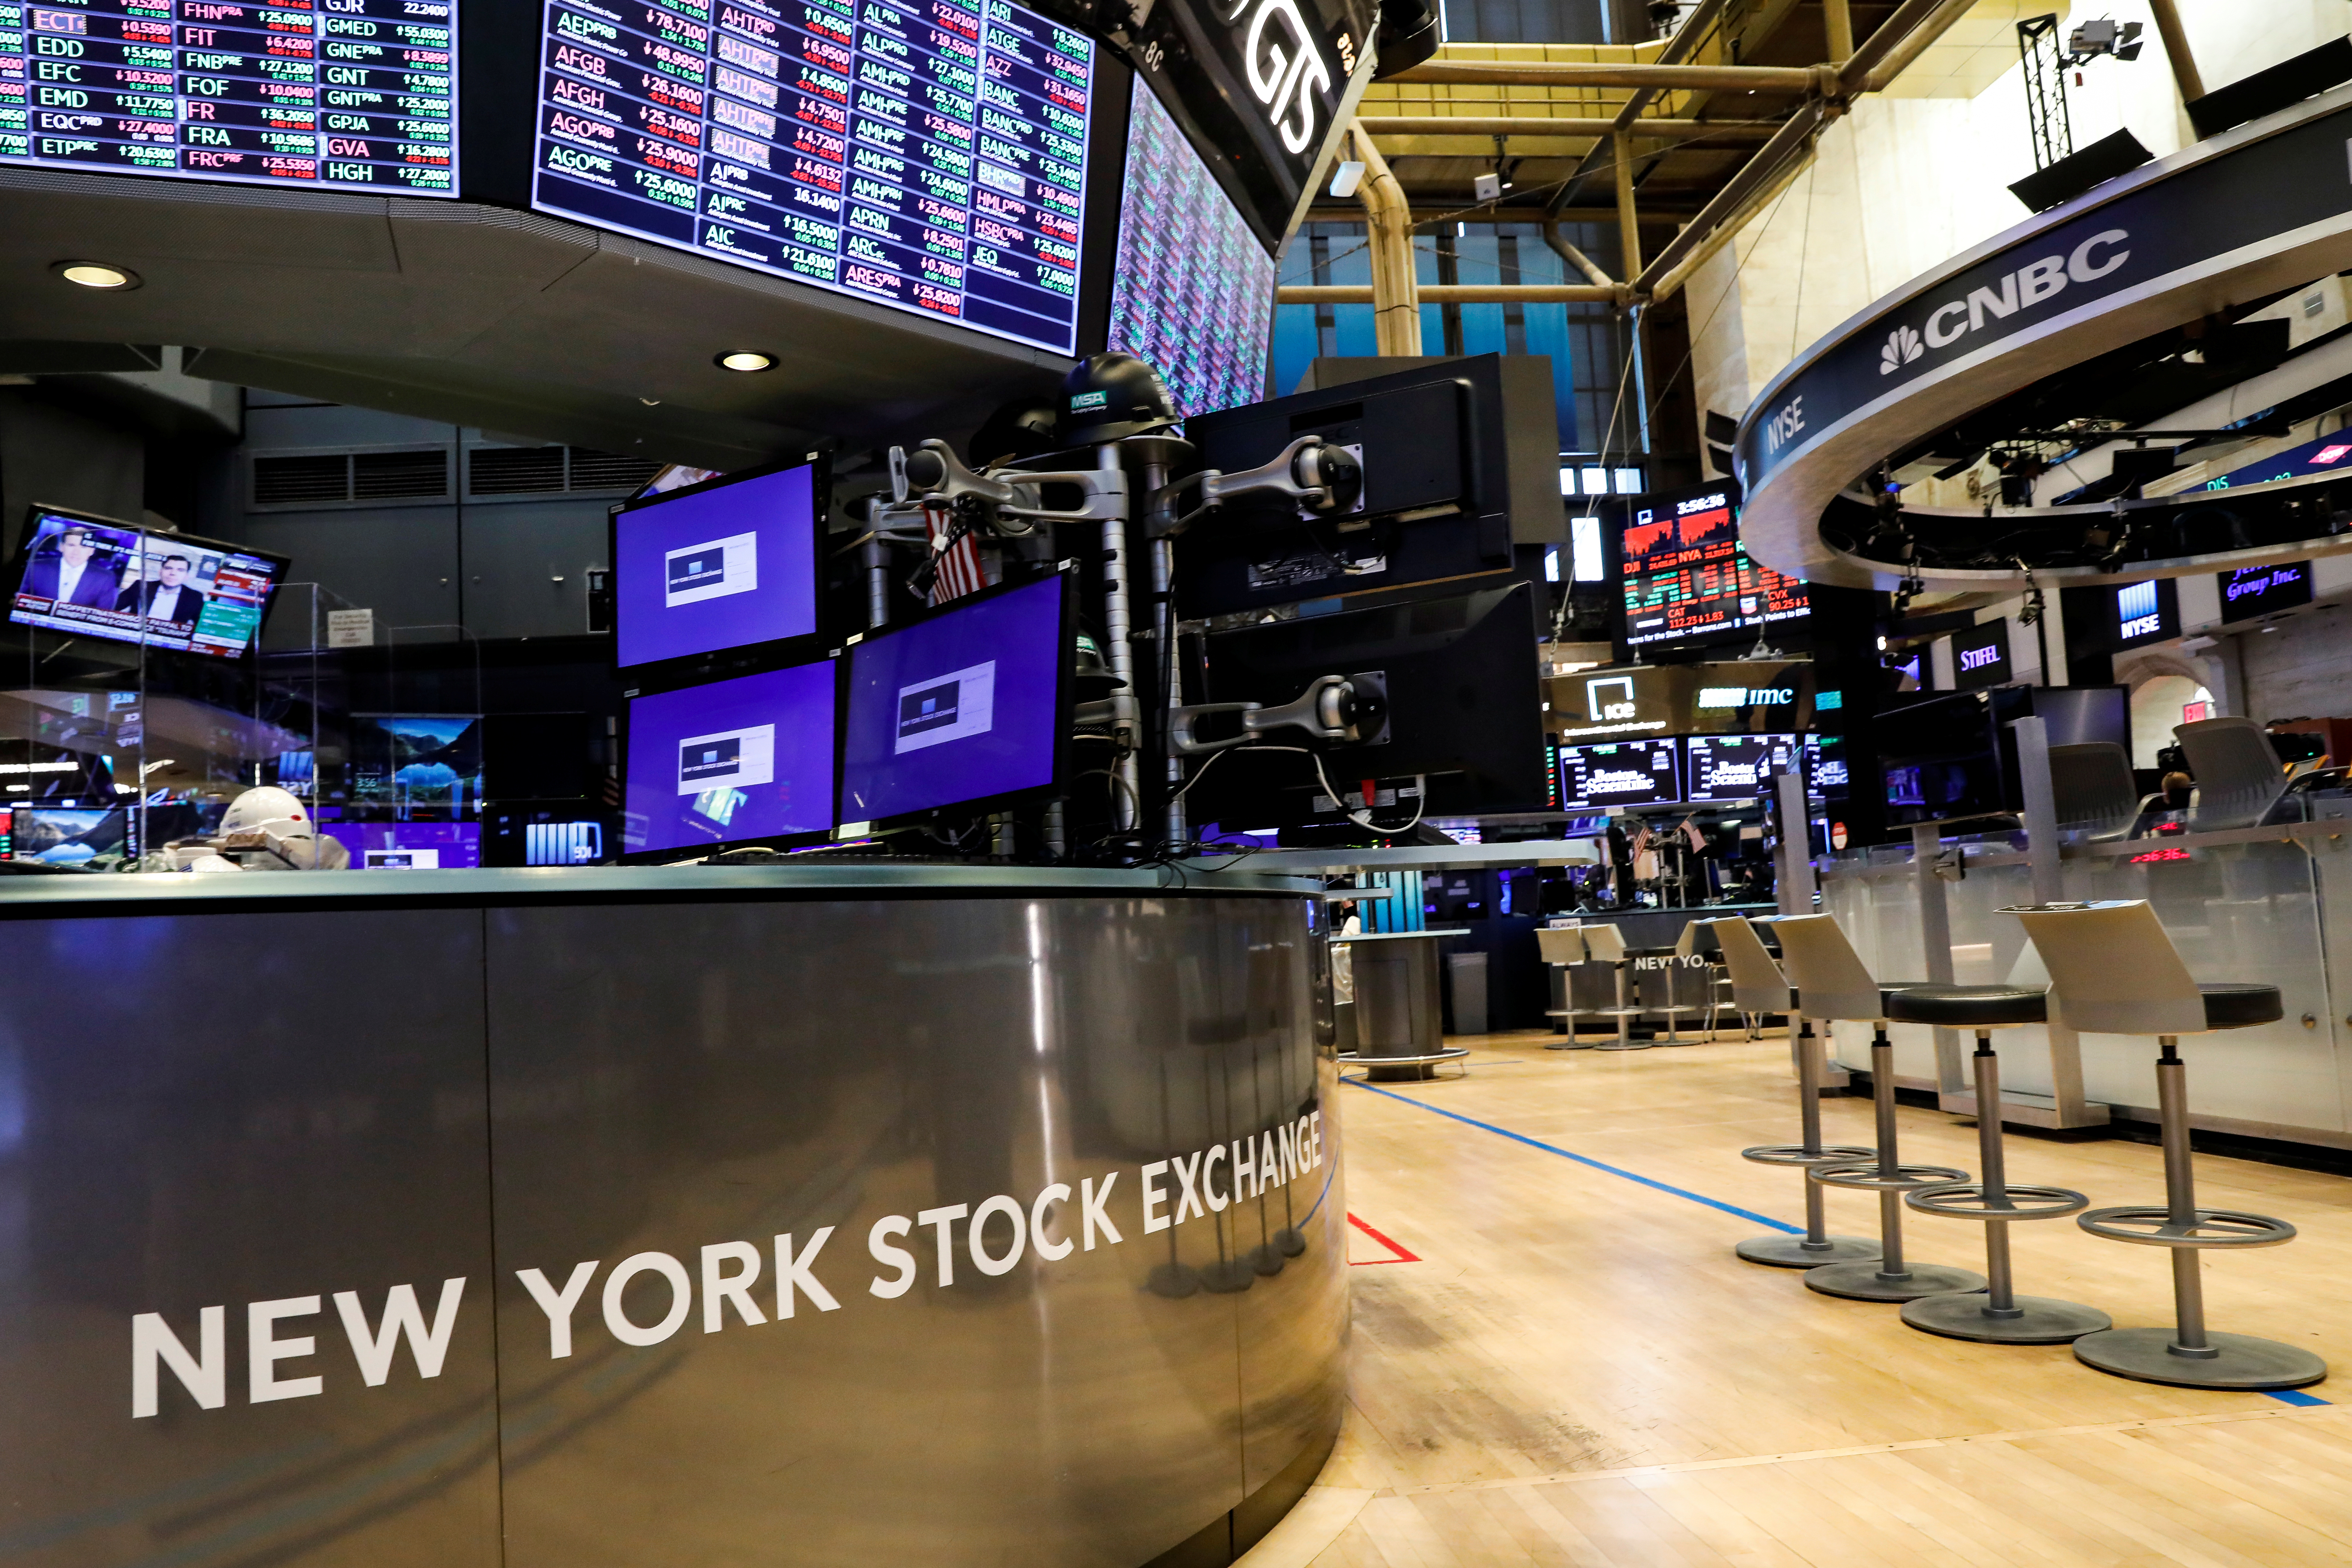 A nearly empty trading floor is seen as preparations are made for the return to trading at the New York Stock Exchange (NYSE) in New York, U.S., May 22, 2020. REUTERS/Brendan McDermid